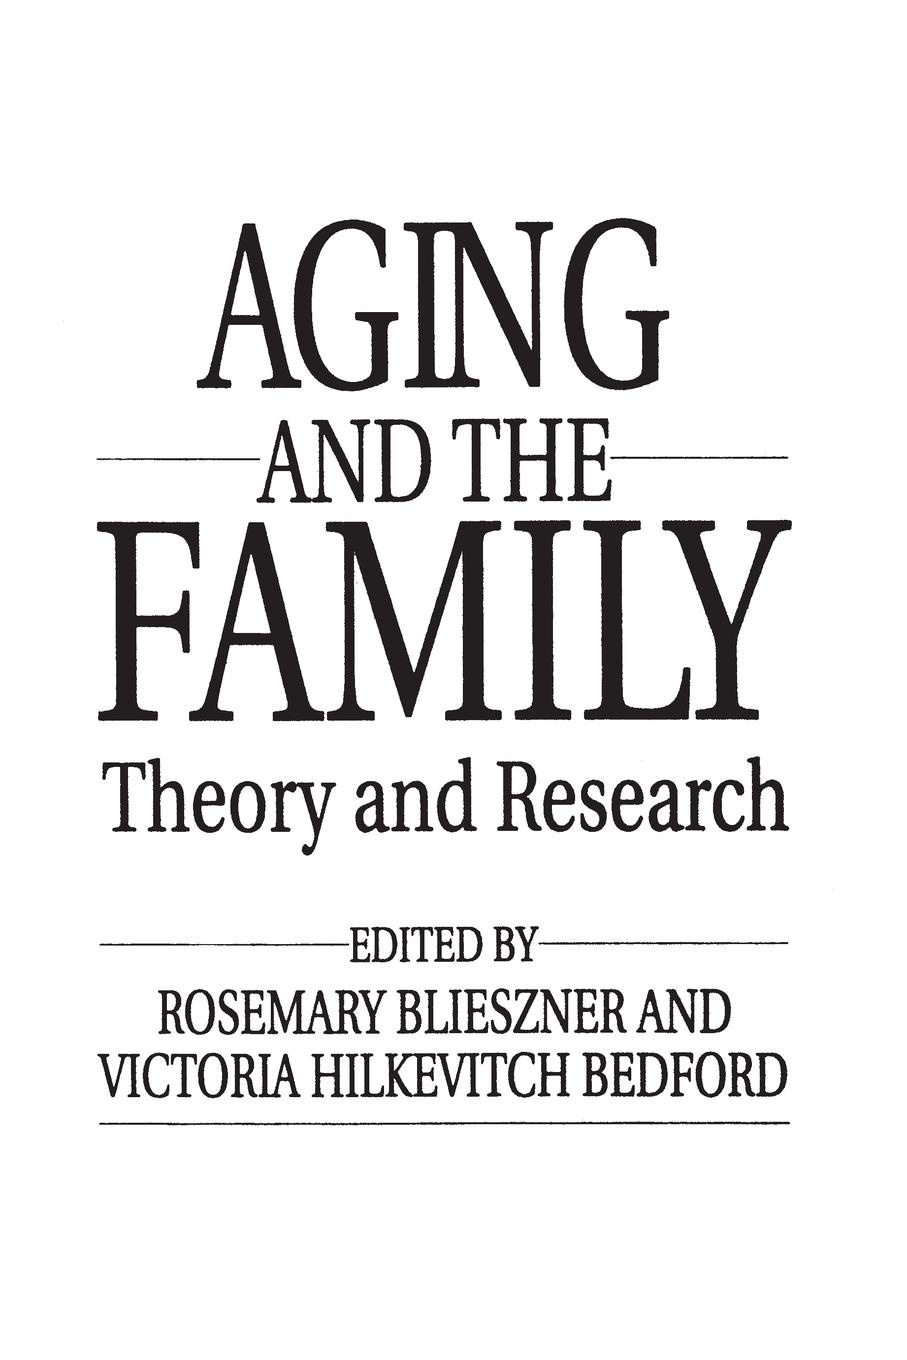 Rosemary Blieszner Victoria Bedford Handbook of Aging and the Family Theory and Research